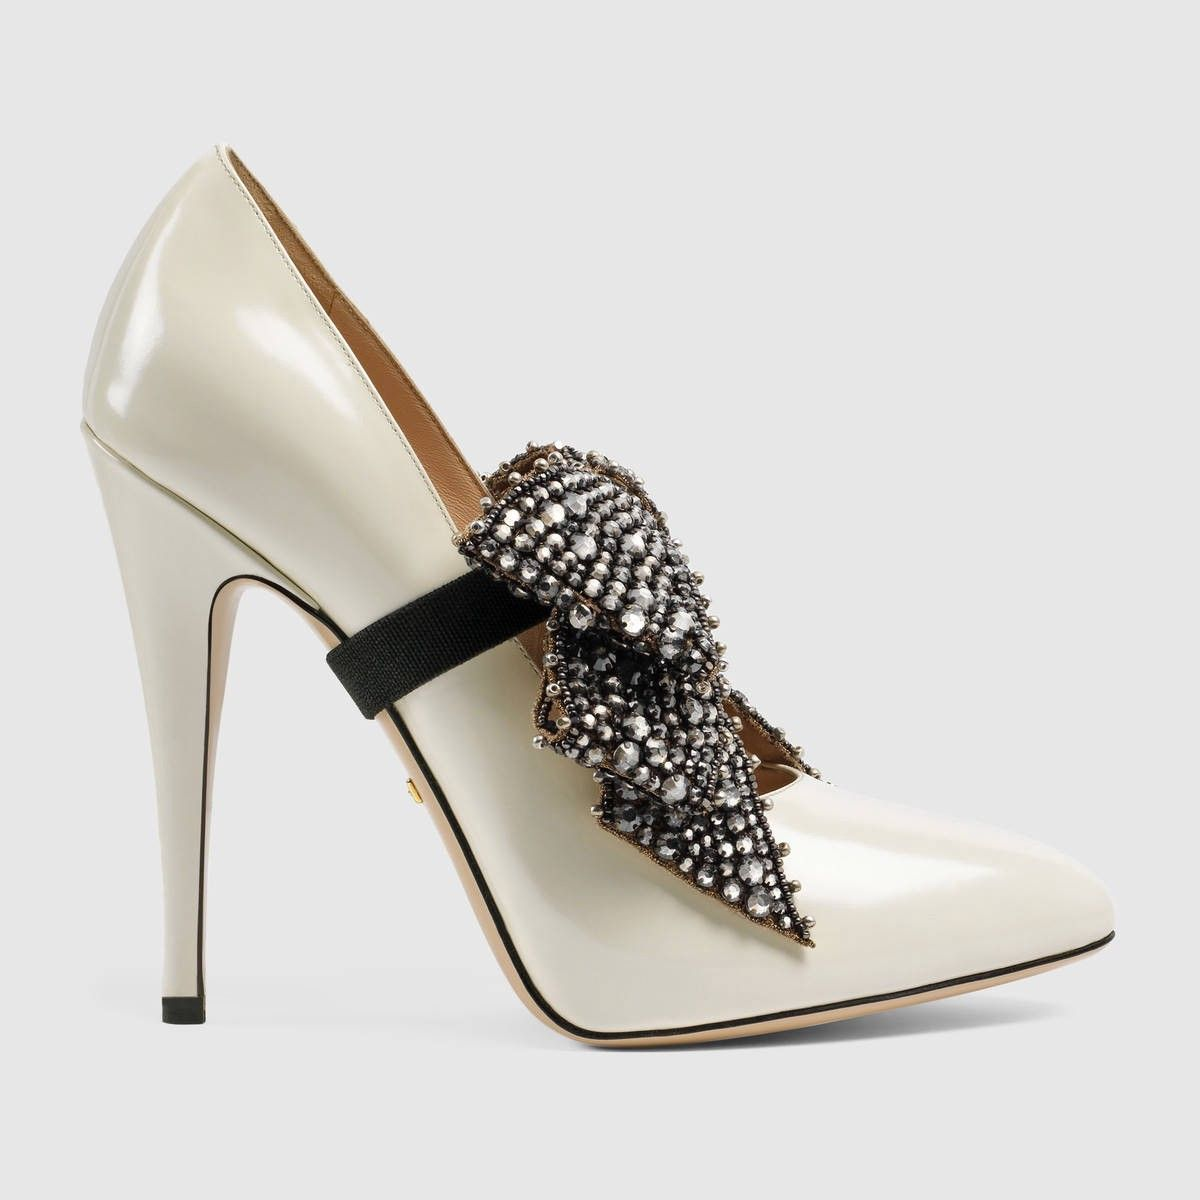 df7a4058492 GUCCI Leather Pump With Crystal Bow - White Magnolia Leather.  gucci  shoes   all